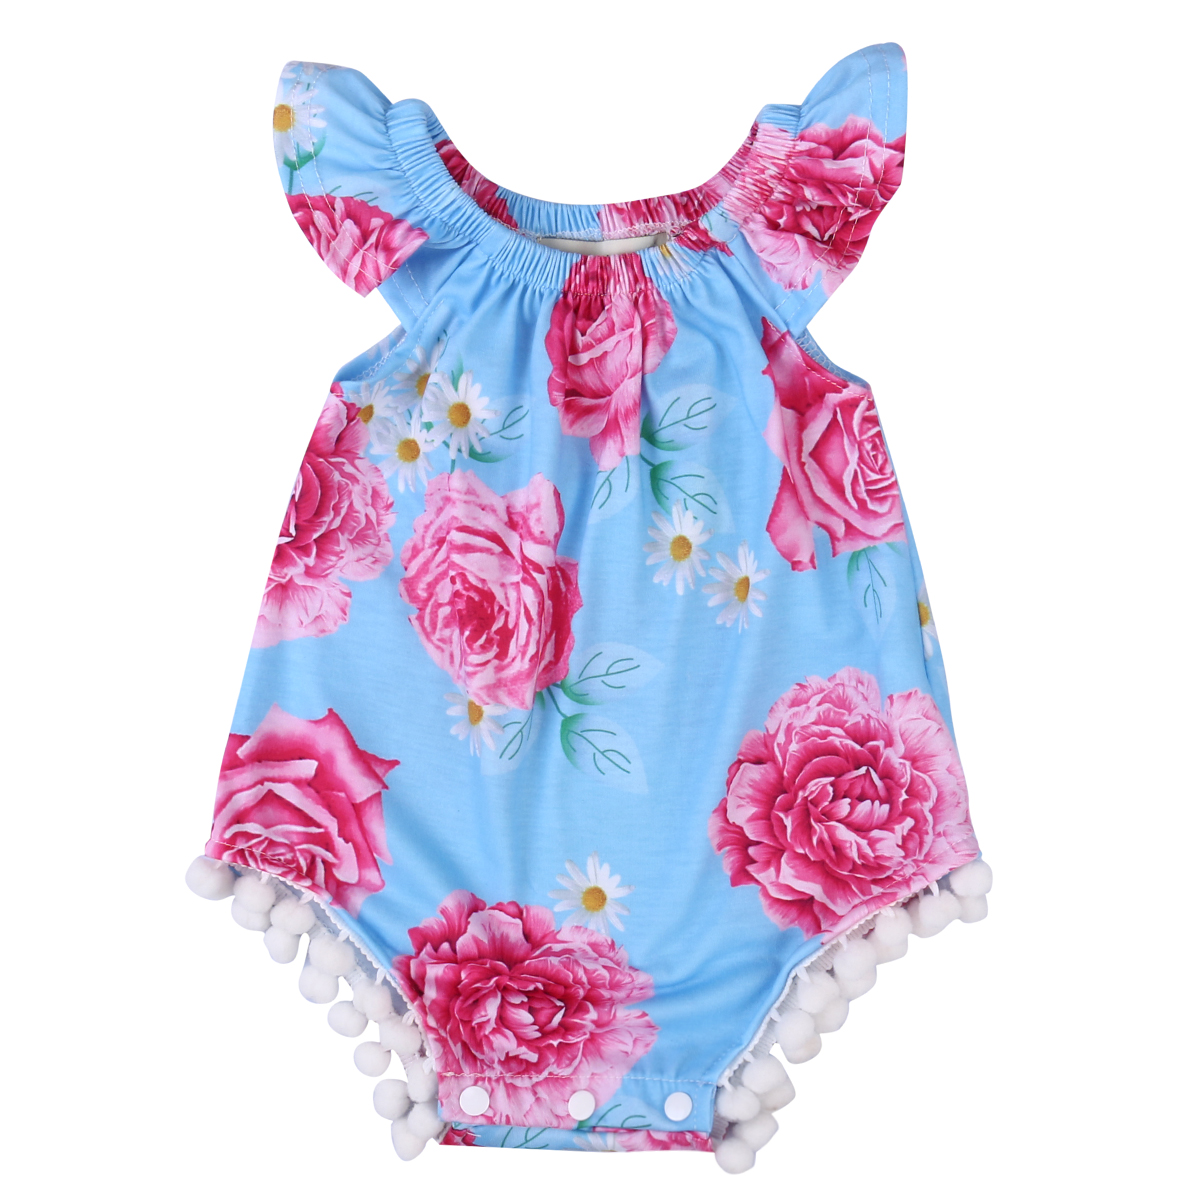 Summer 2007 Baby Girls Clothing Toddler Baby Girls Floral Tassle Romper Jumpsuit Kids Clothes ...